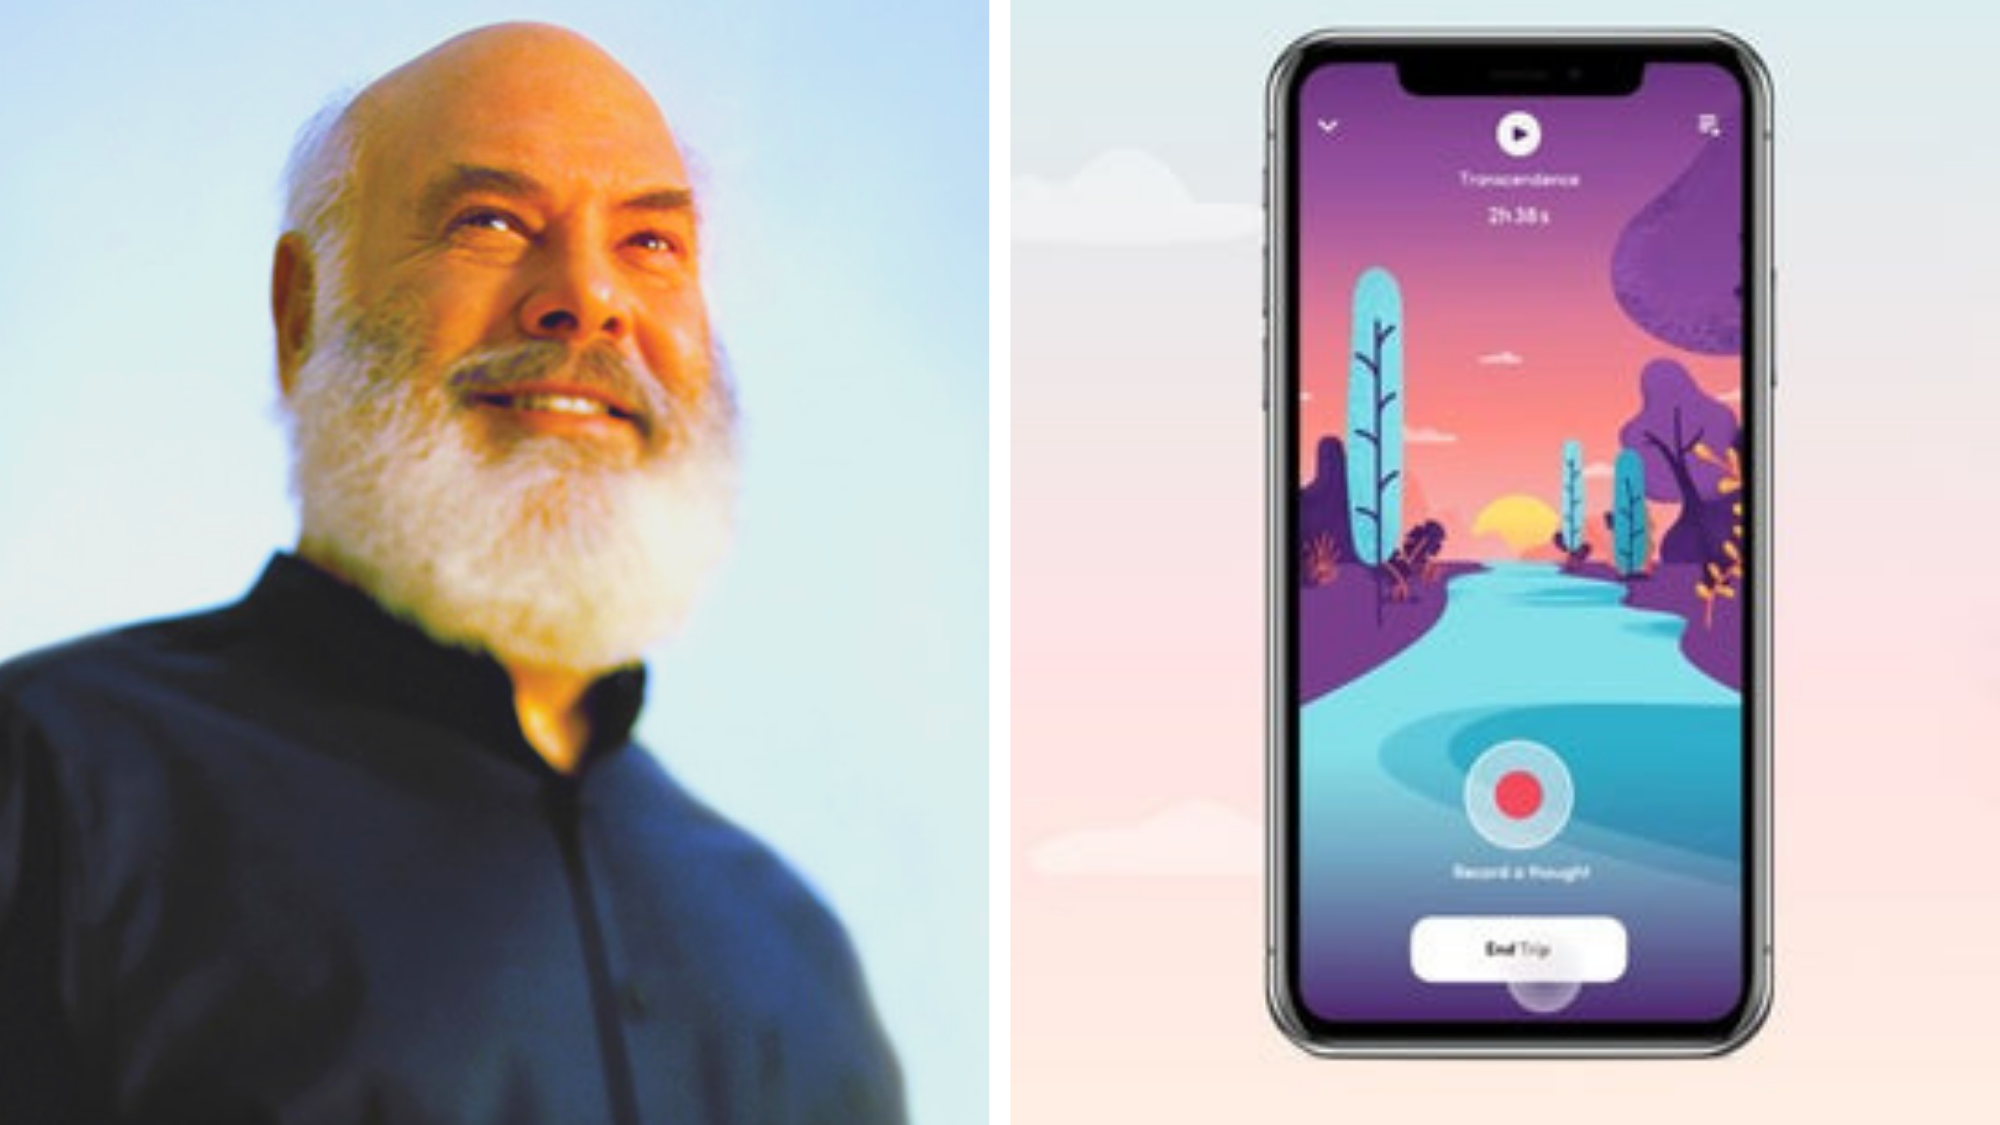 Dr. Andrew Weil Joins Advisory Board for Psychedelic Therapy Platform Field Trip